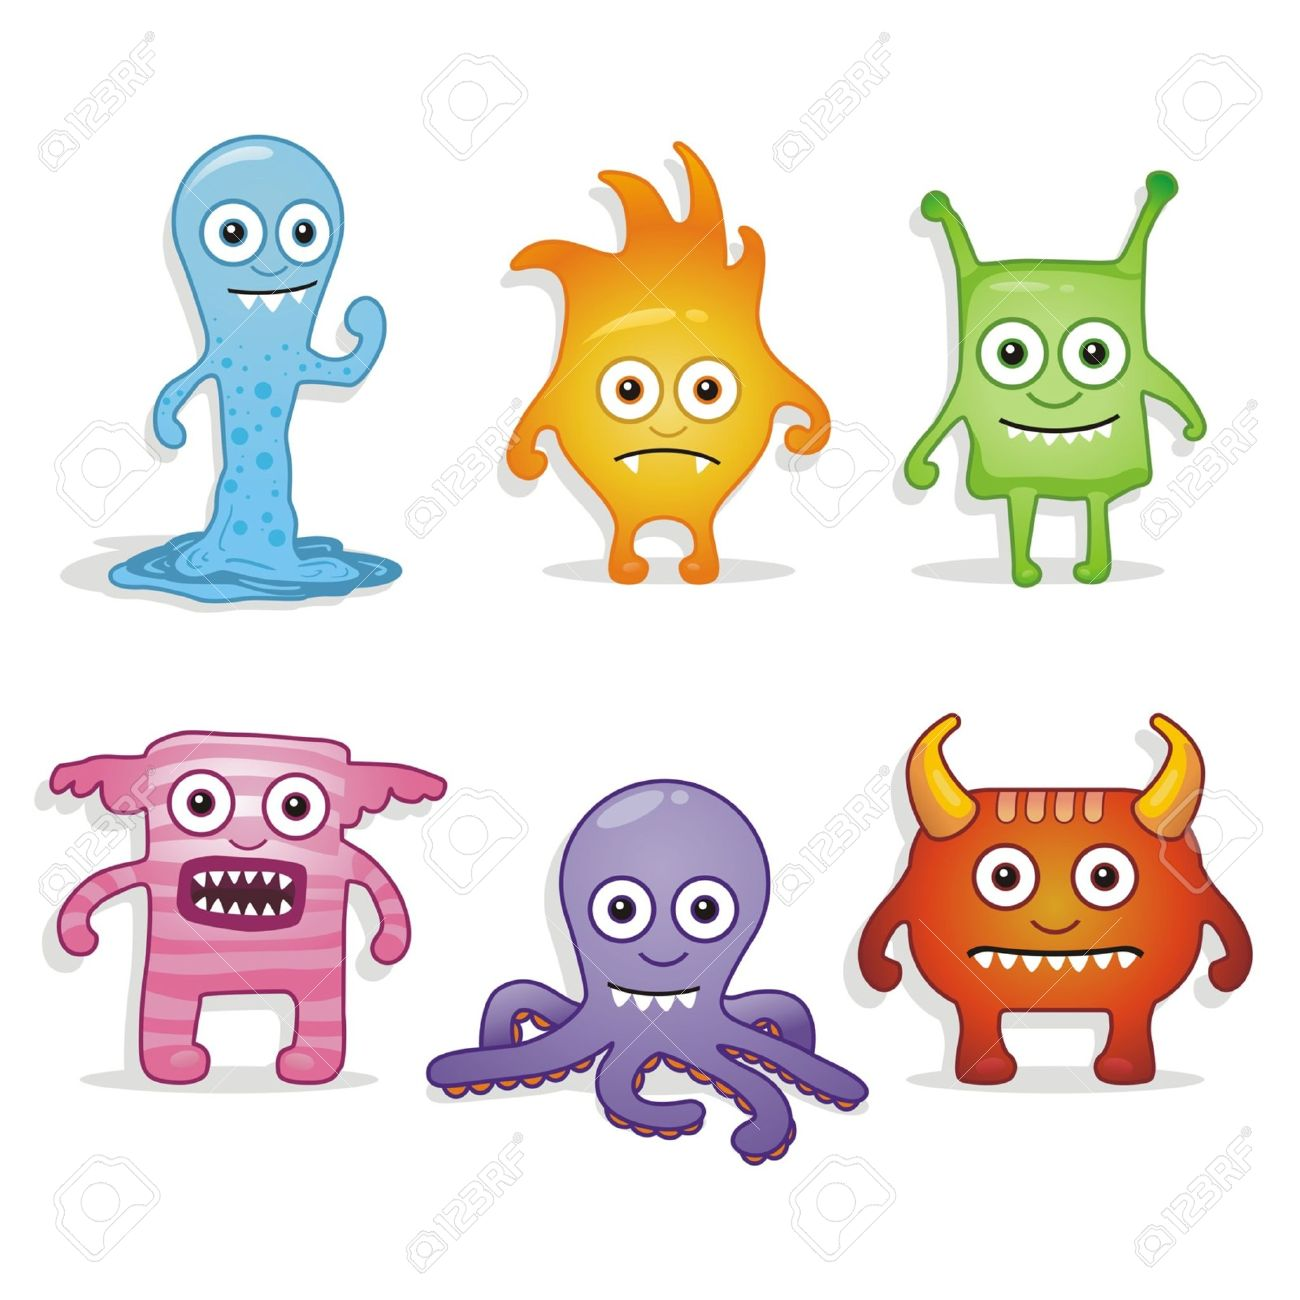 Cartoon Monsters Royalty Free Cliparts, Vectors, And Stock ...